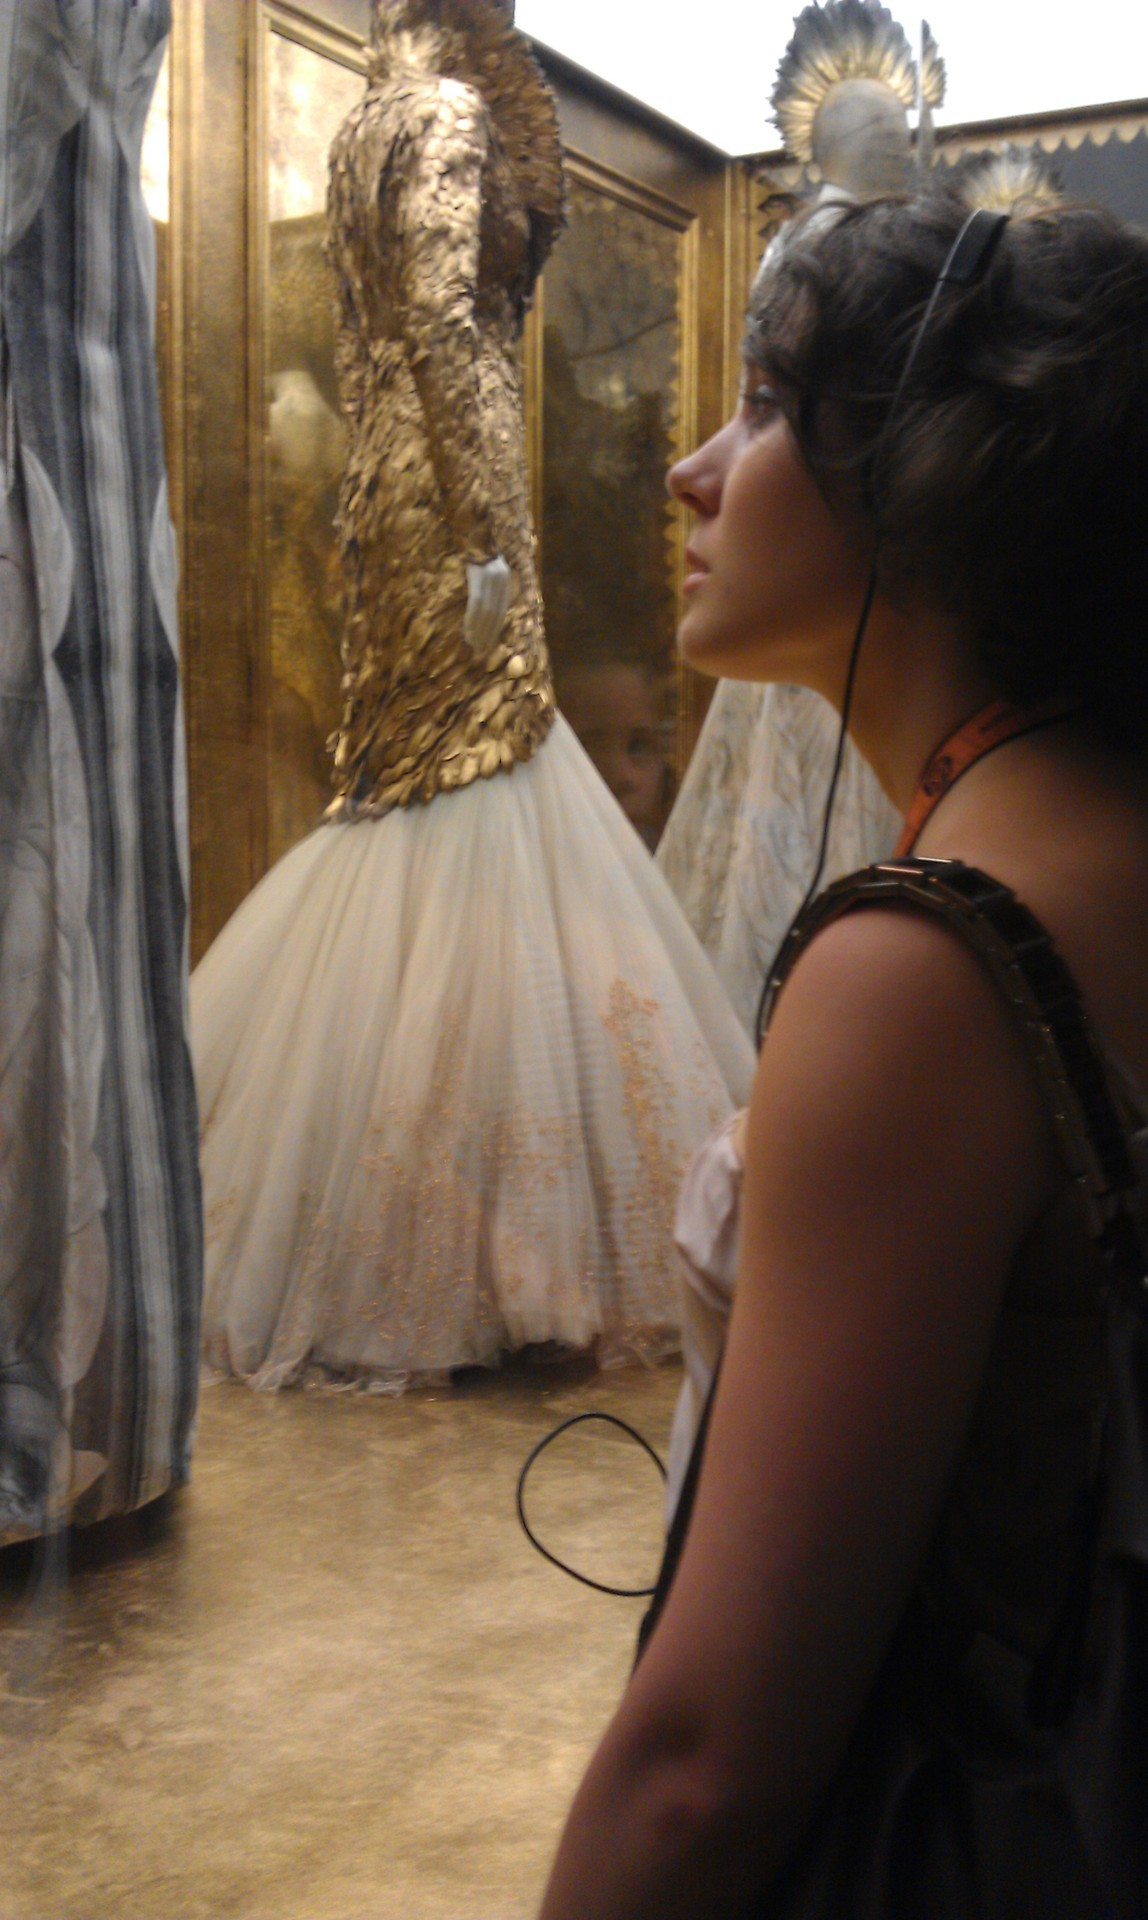 Alexander McQueen- Savage Beauty at the MET, and my lovely friend Helen.